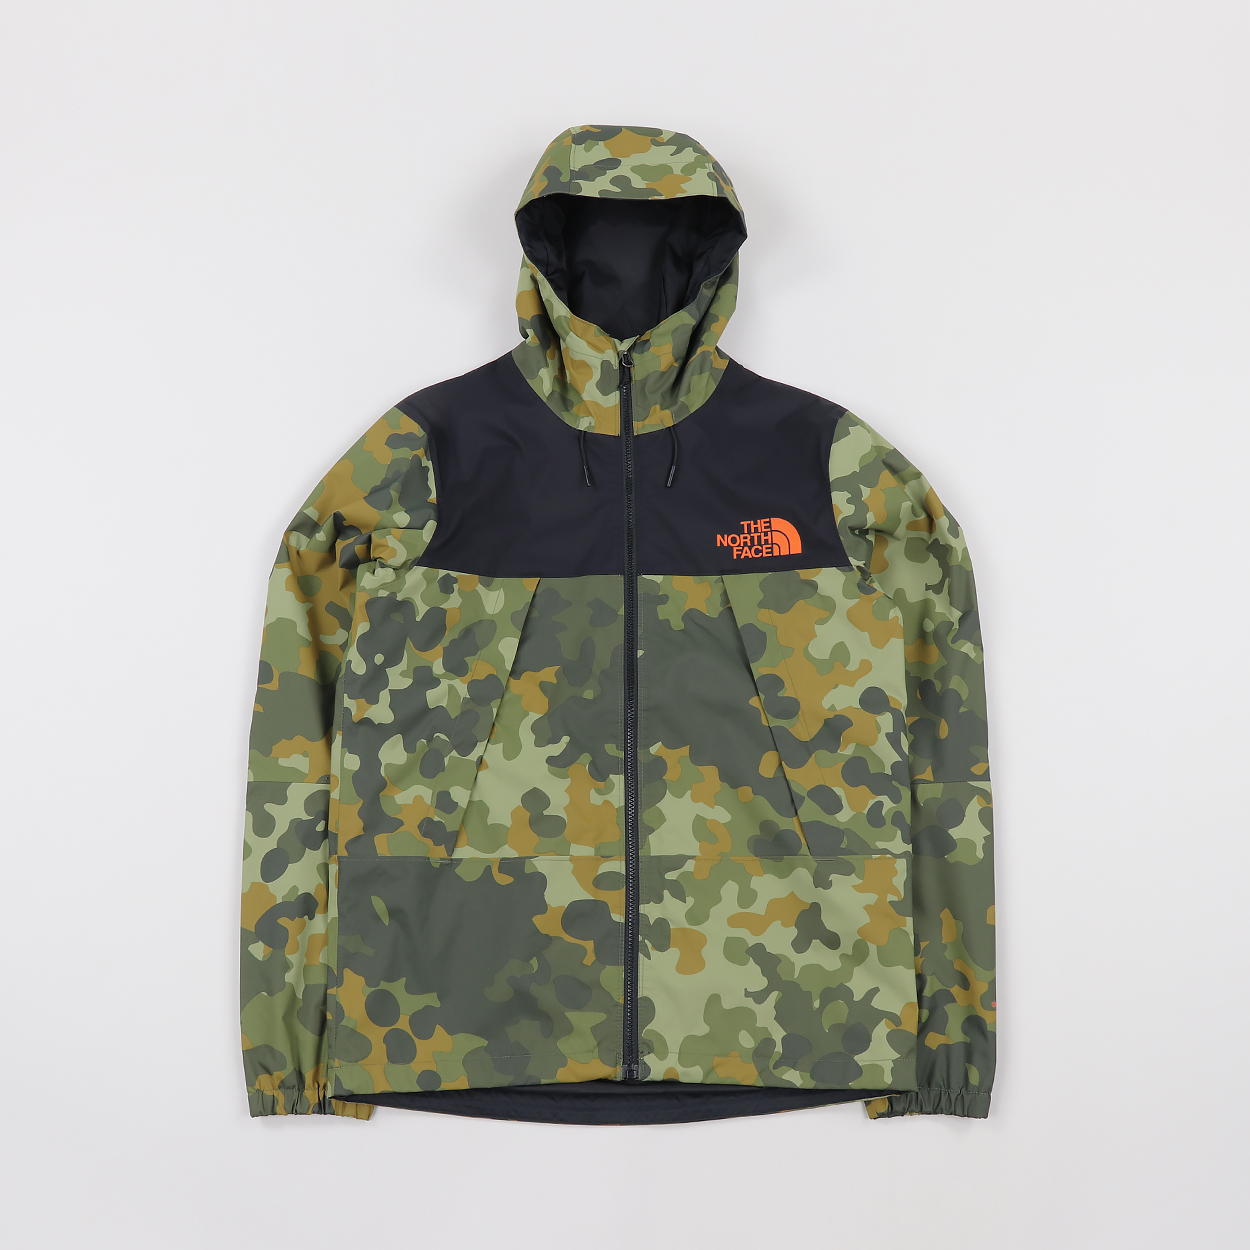 45647e264 The North Face Mens 1990 Mountain Q Jacket New Taupe Green Camo £77.00